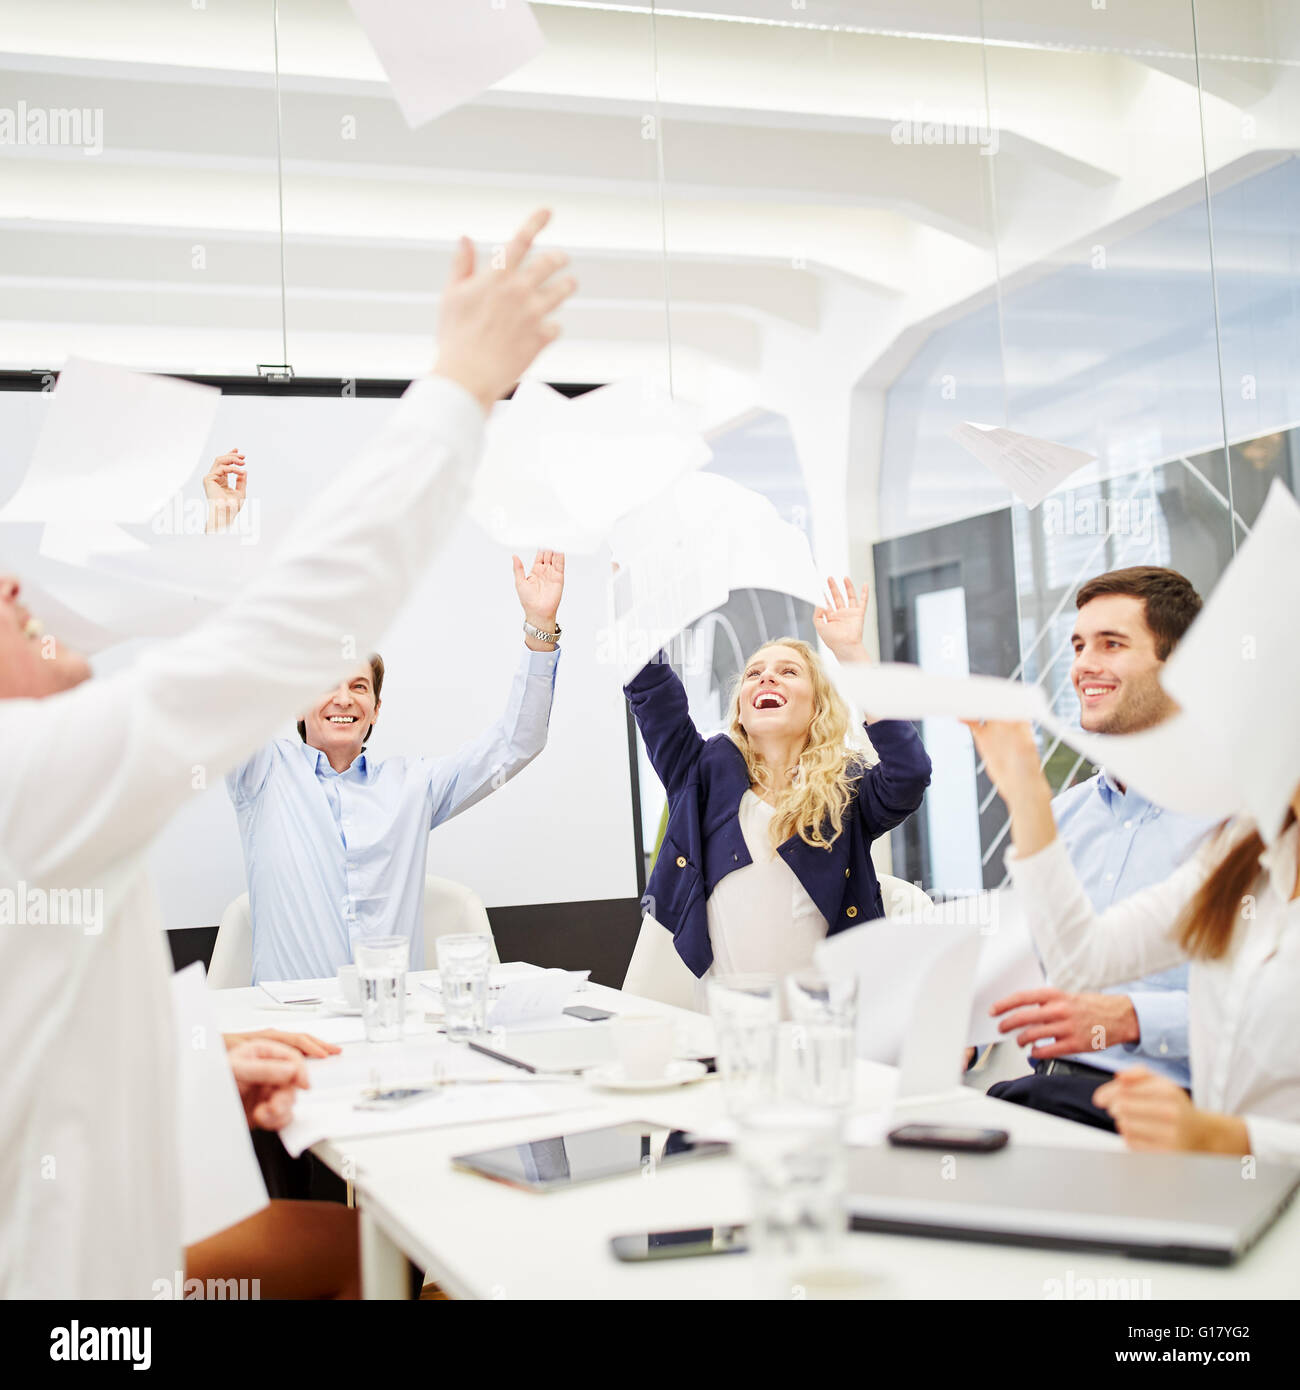 Business people celebrates their success and throws sheets of paper in the air during a business meeting - Stock Image